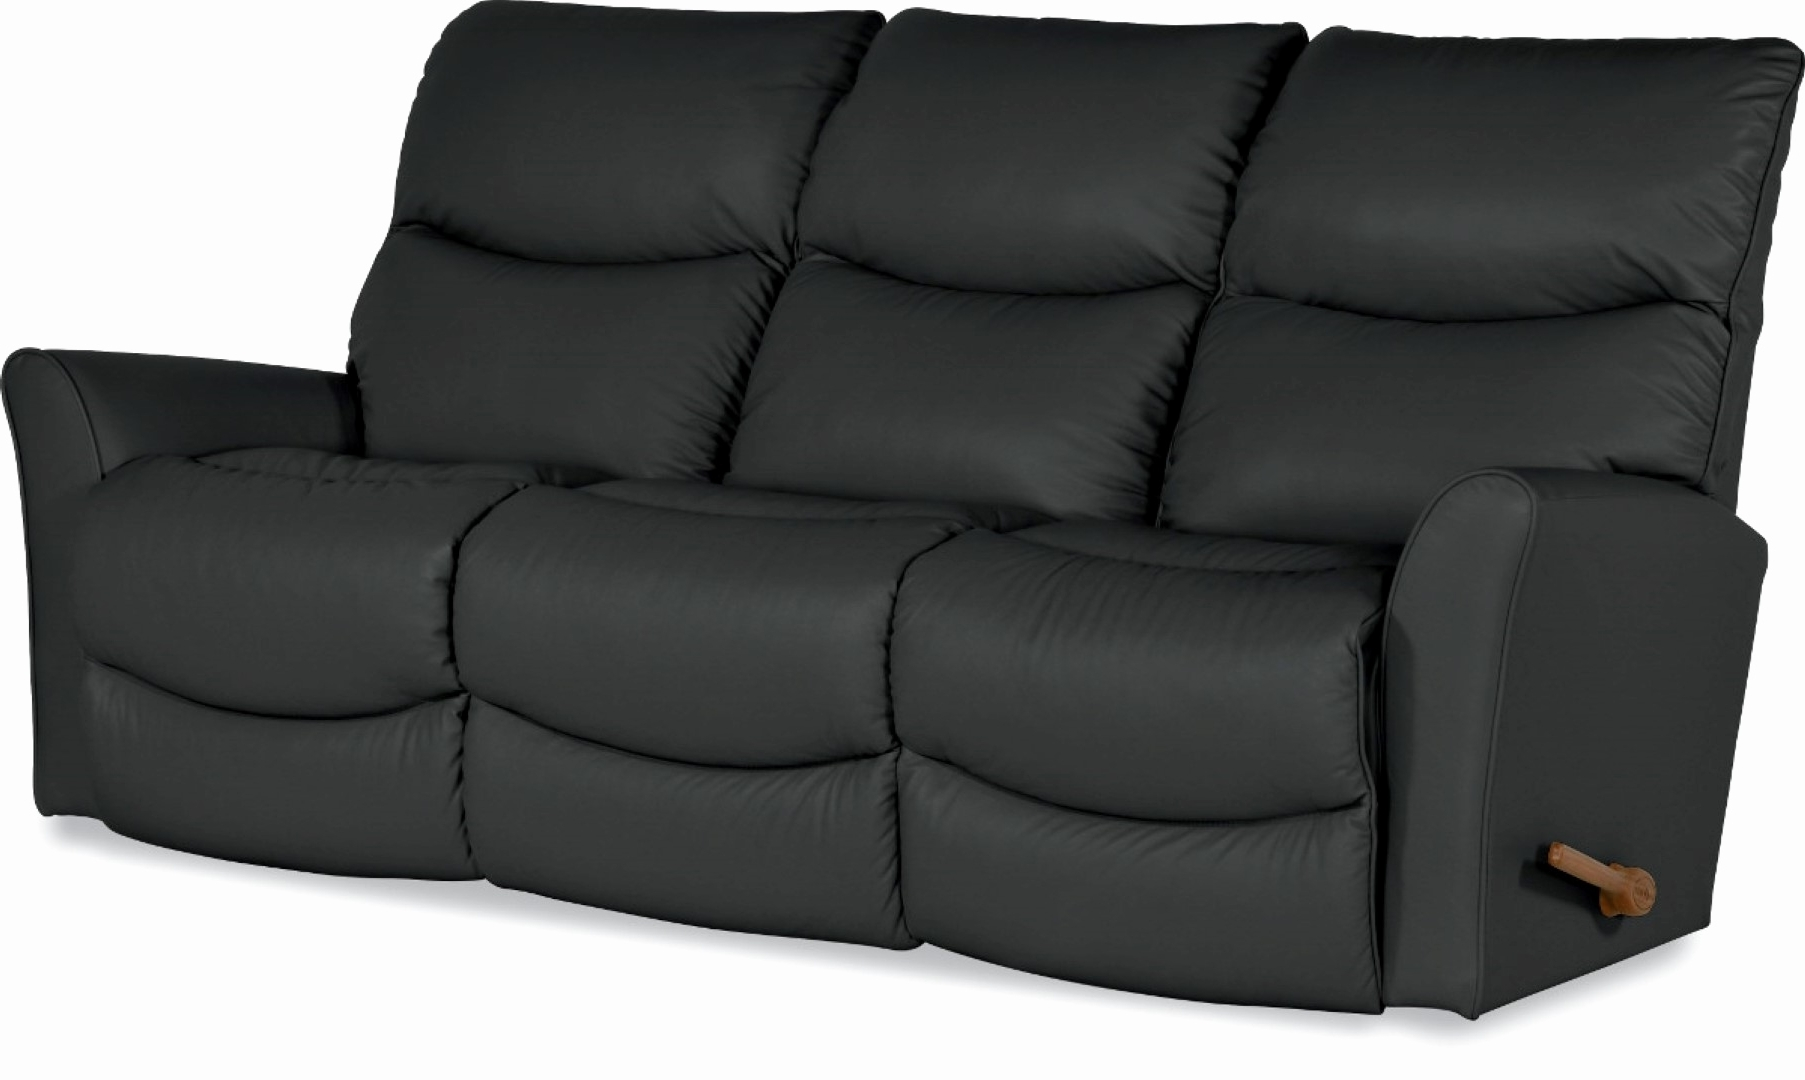 Lazy Boy Chaise Lounge Chairs Intended For Well Known Best Lazy Boy L Shaped Sofa 2018 – Couches Ideas (View 13 of 15)